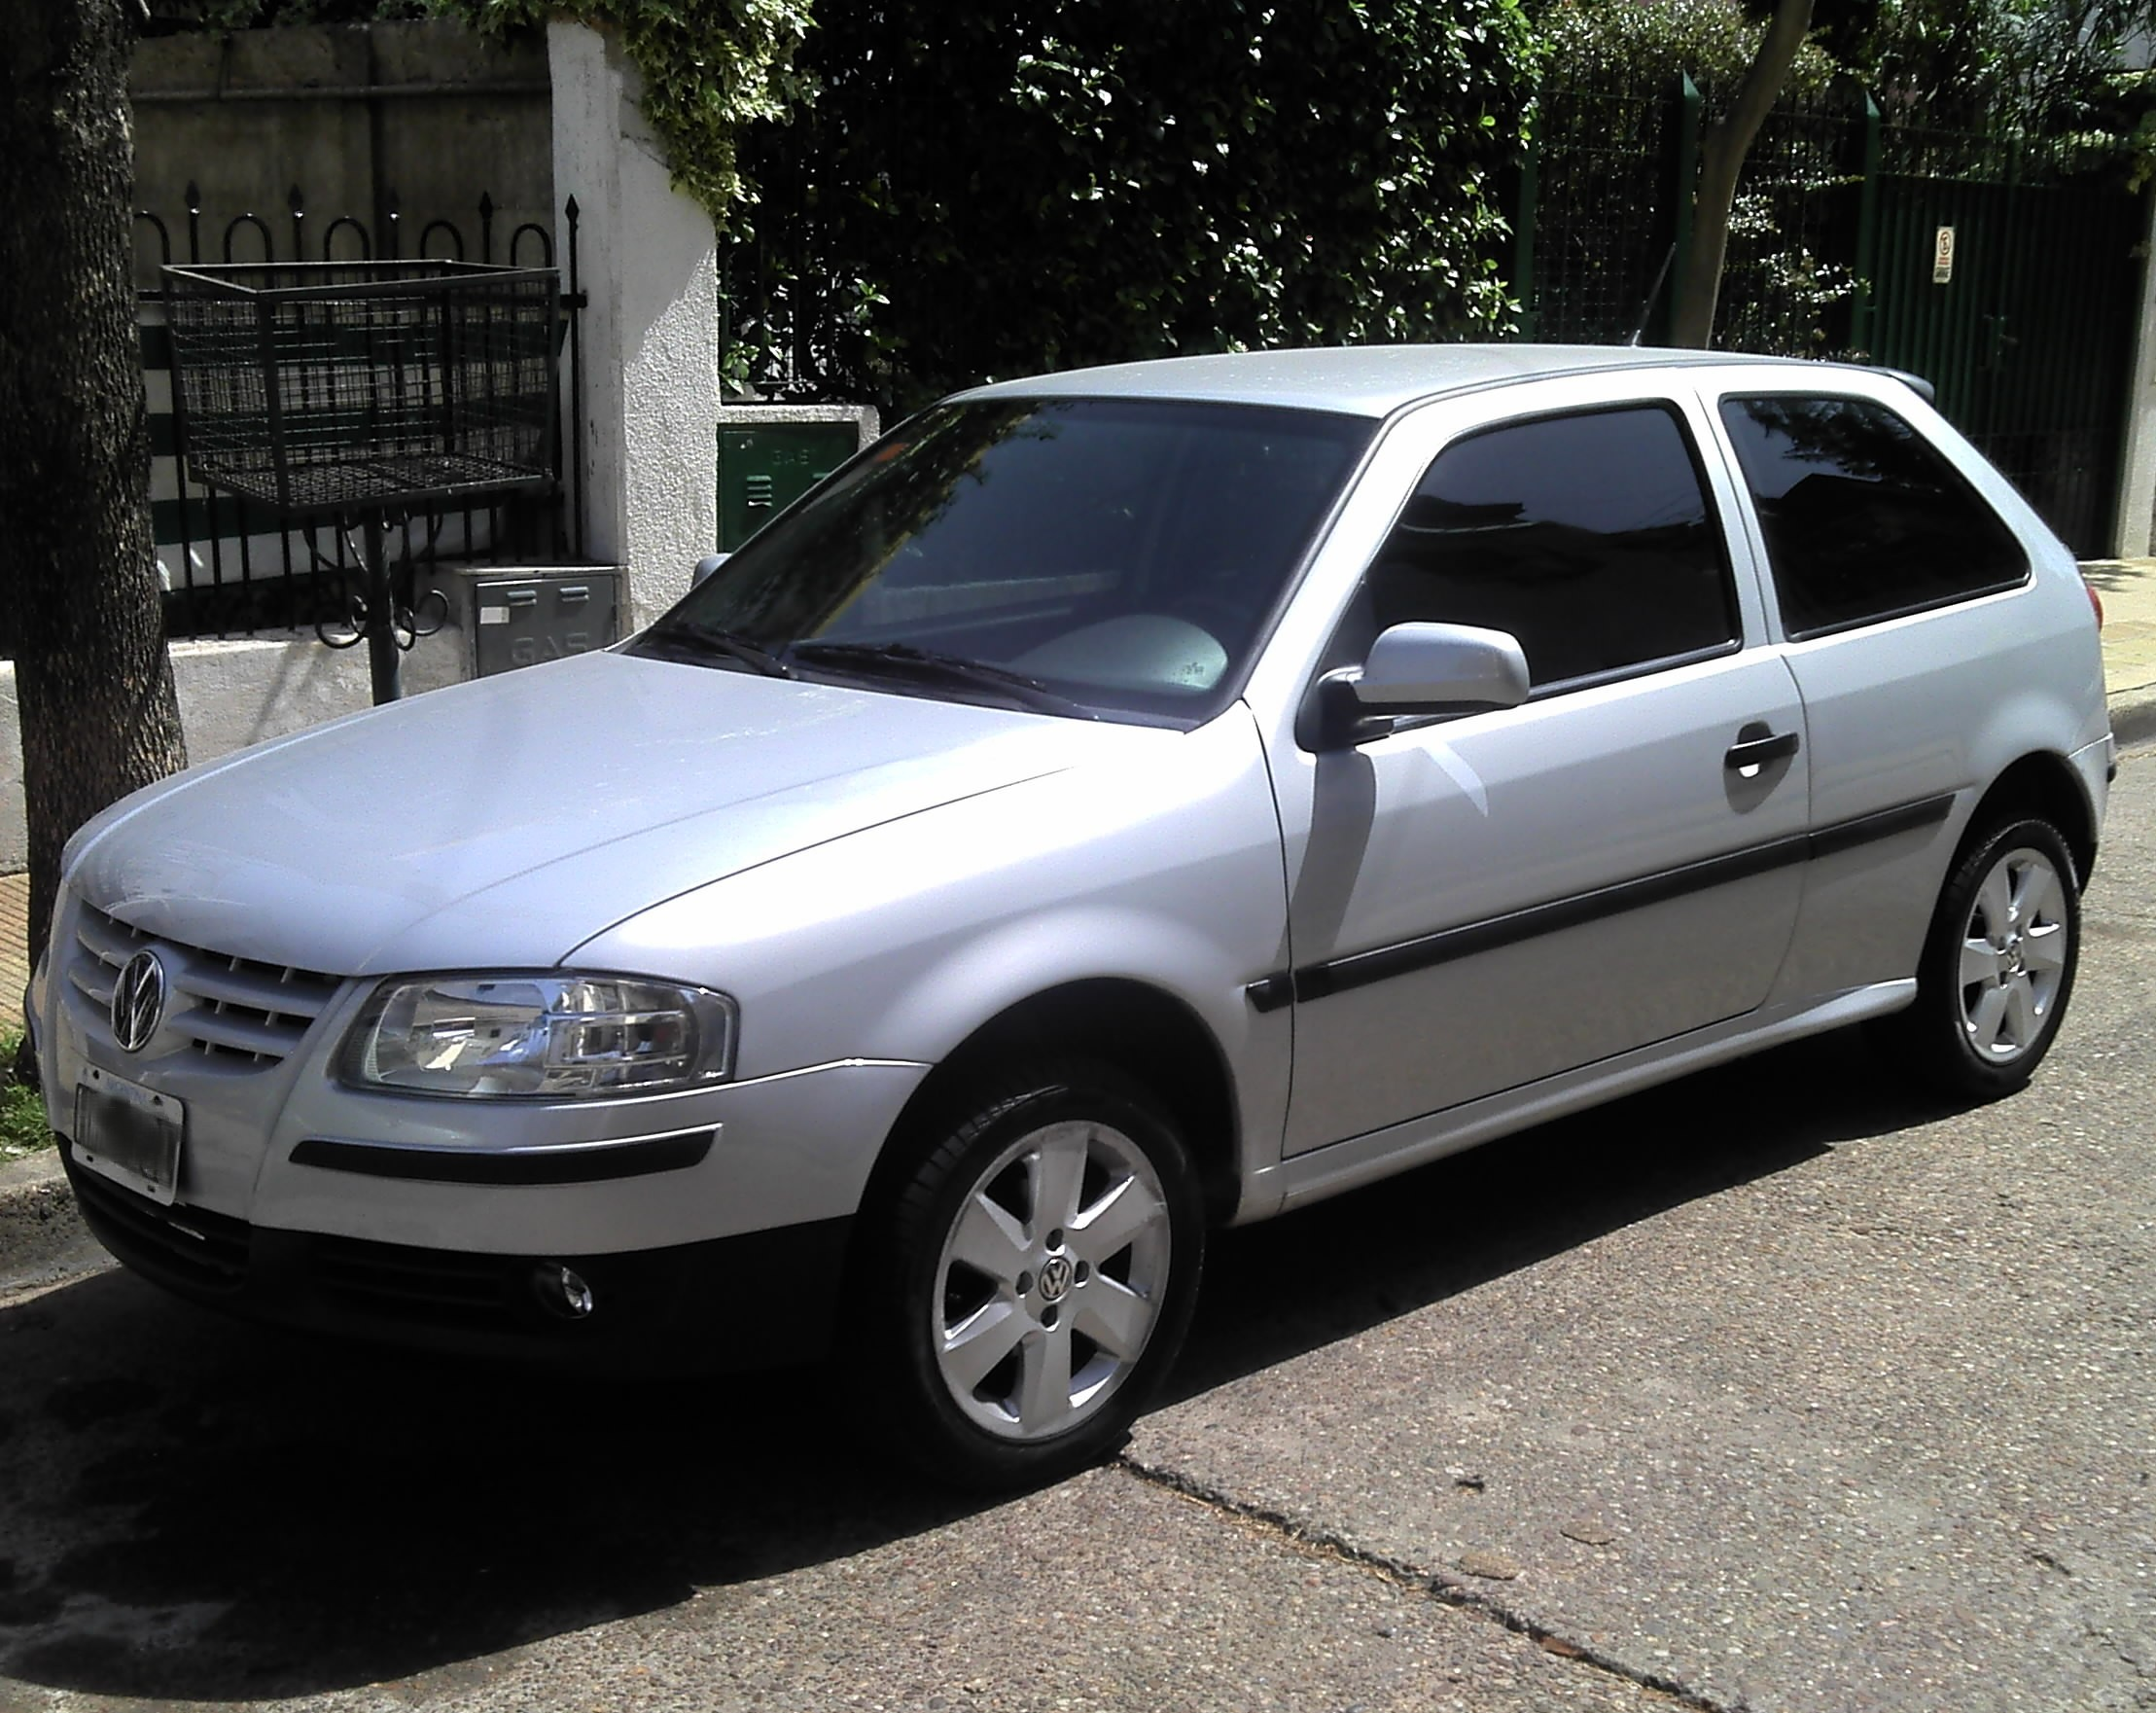 Volkswagen Gol 2002 photo - 3